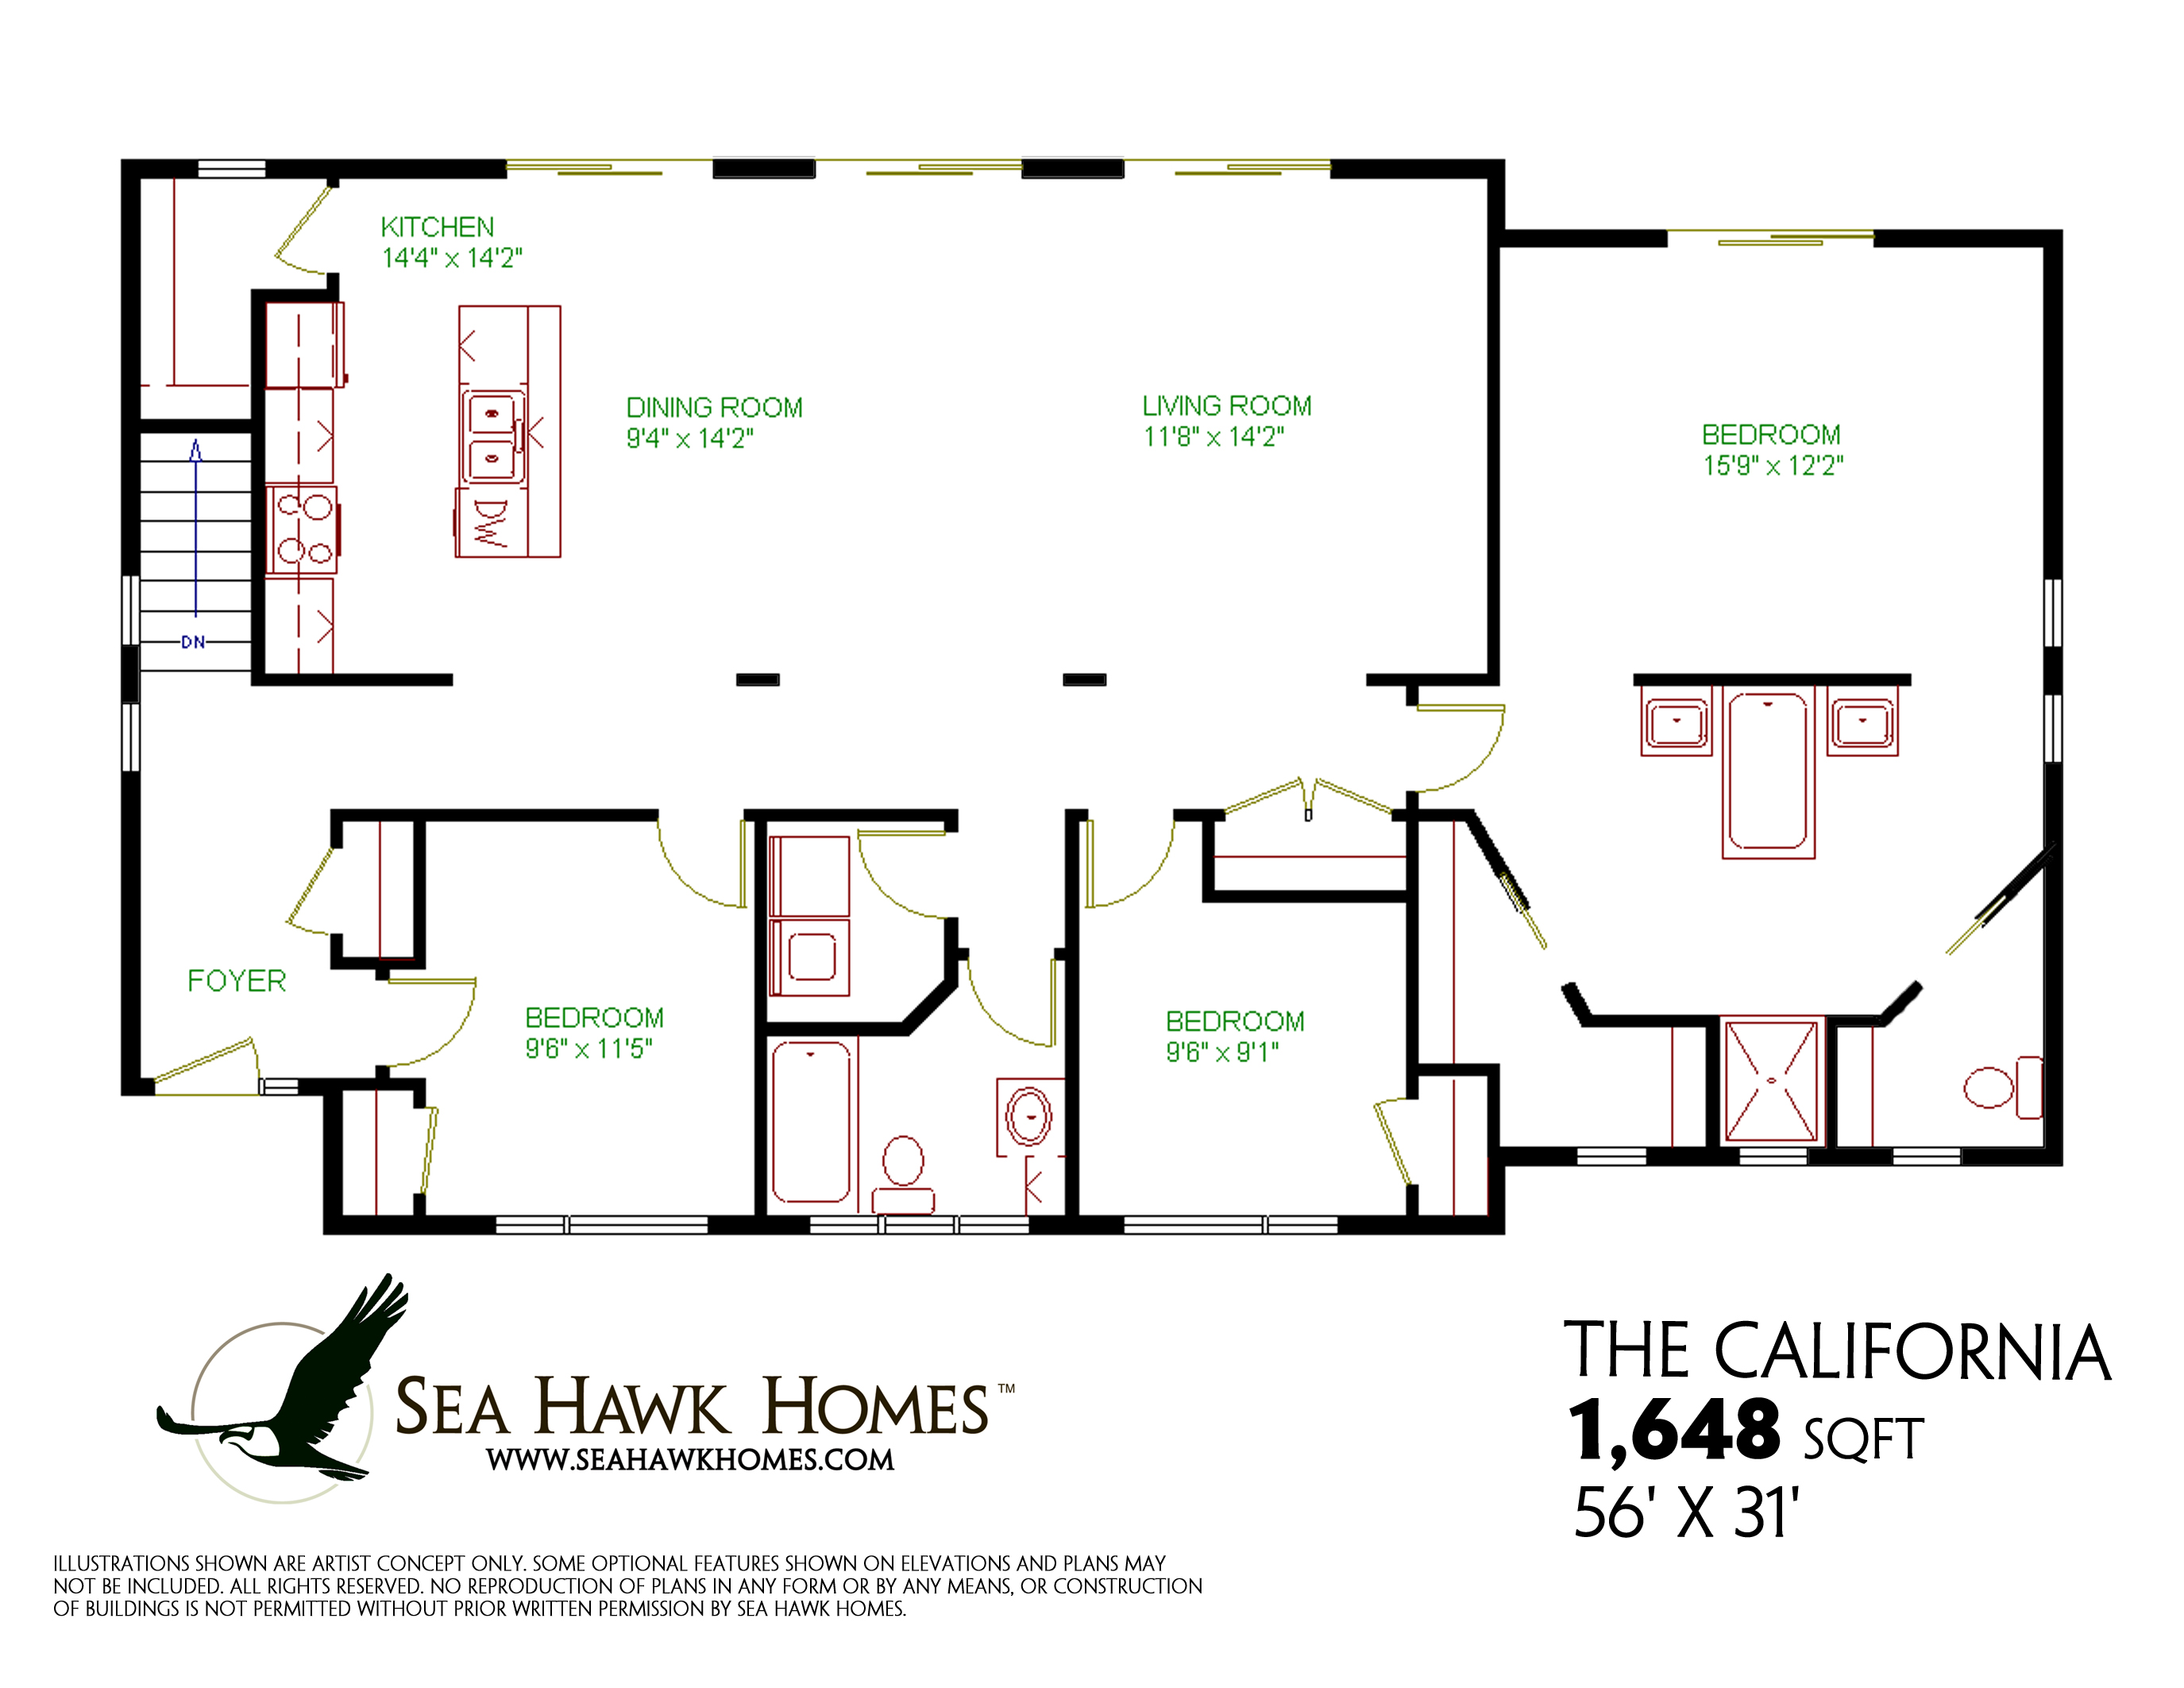 California sea hawk homes House plans ca